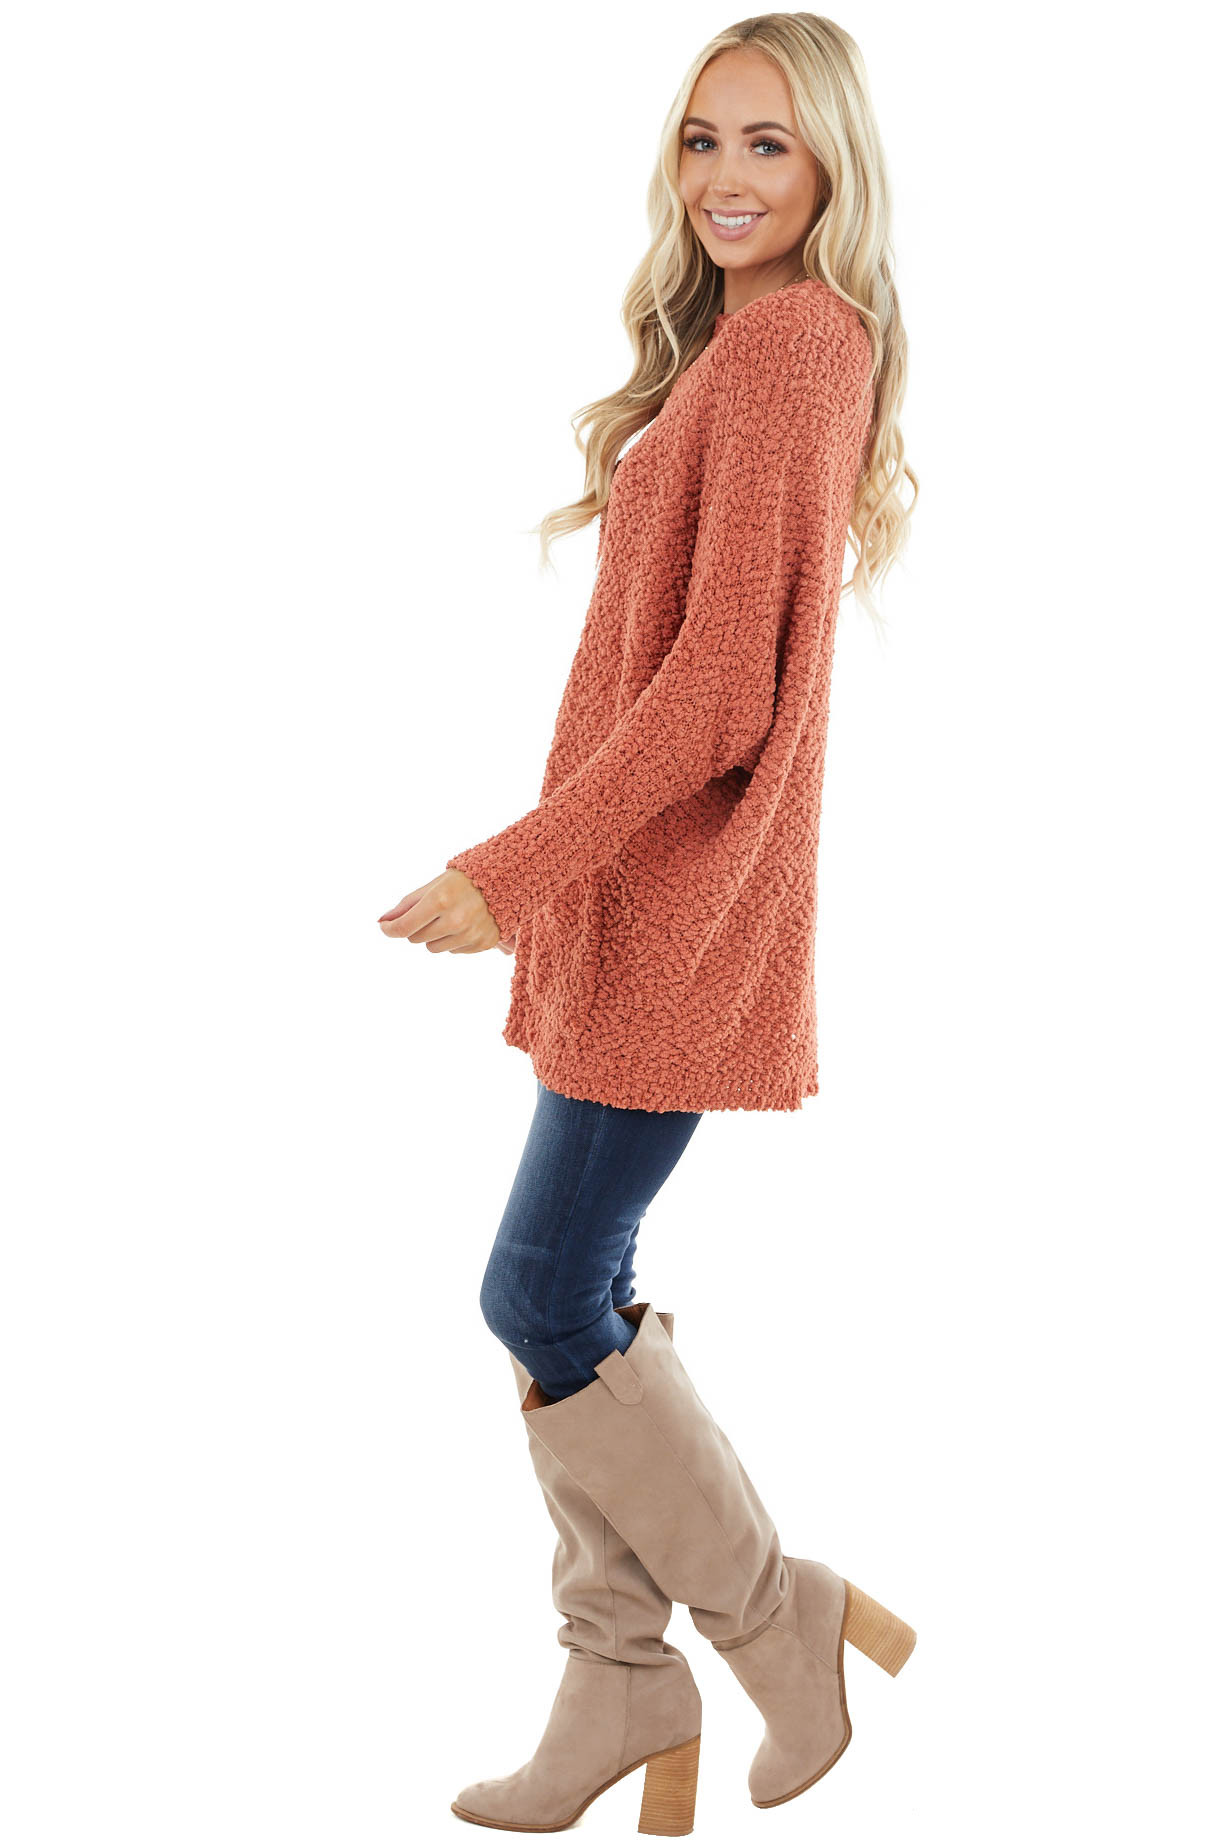 Terracotta Stretchy Knit Long Sweater with Pockets